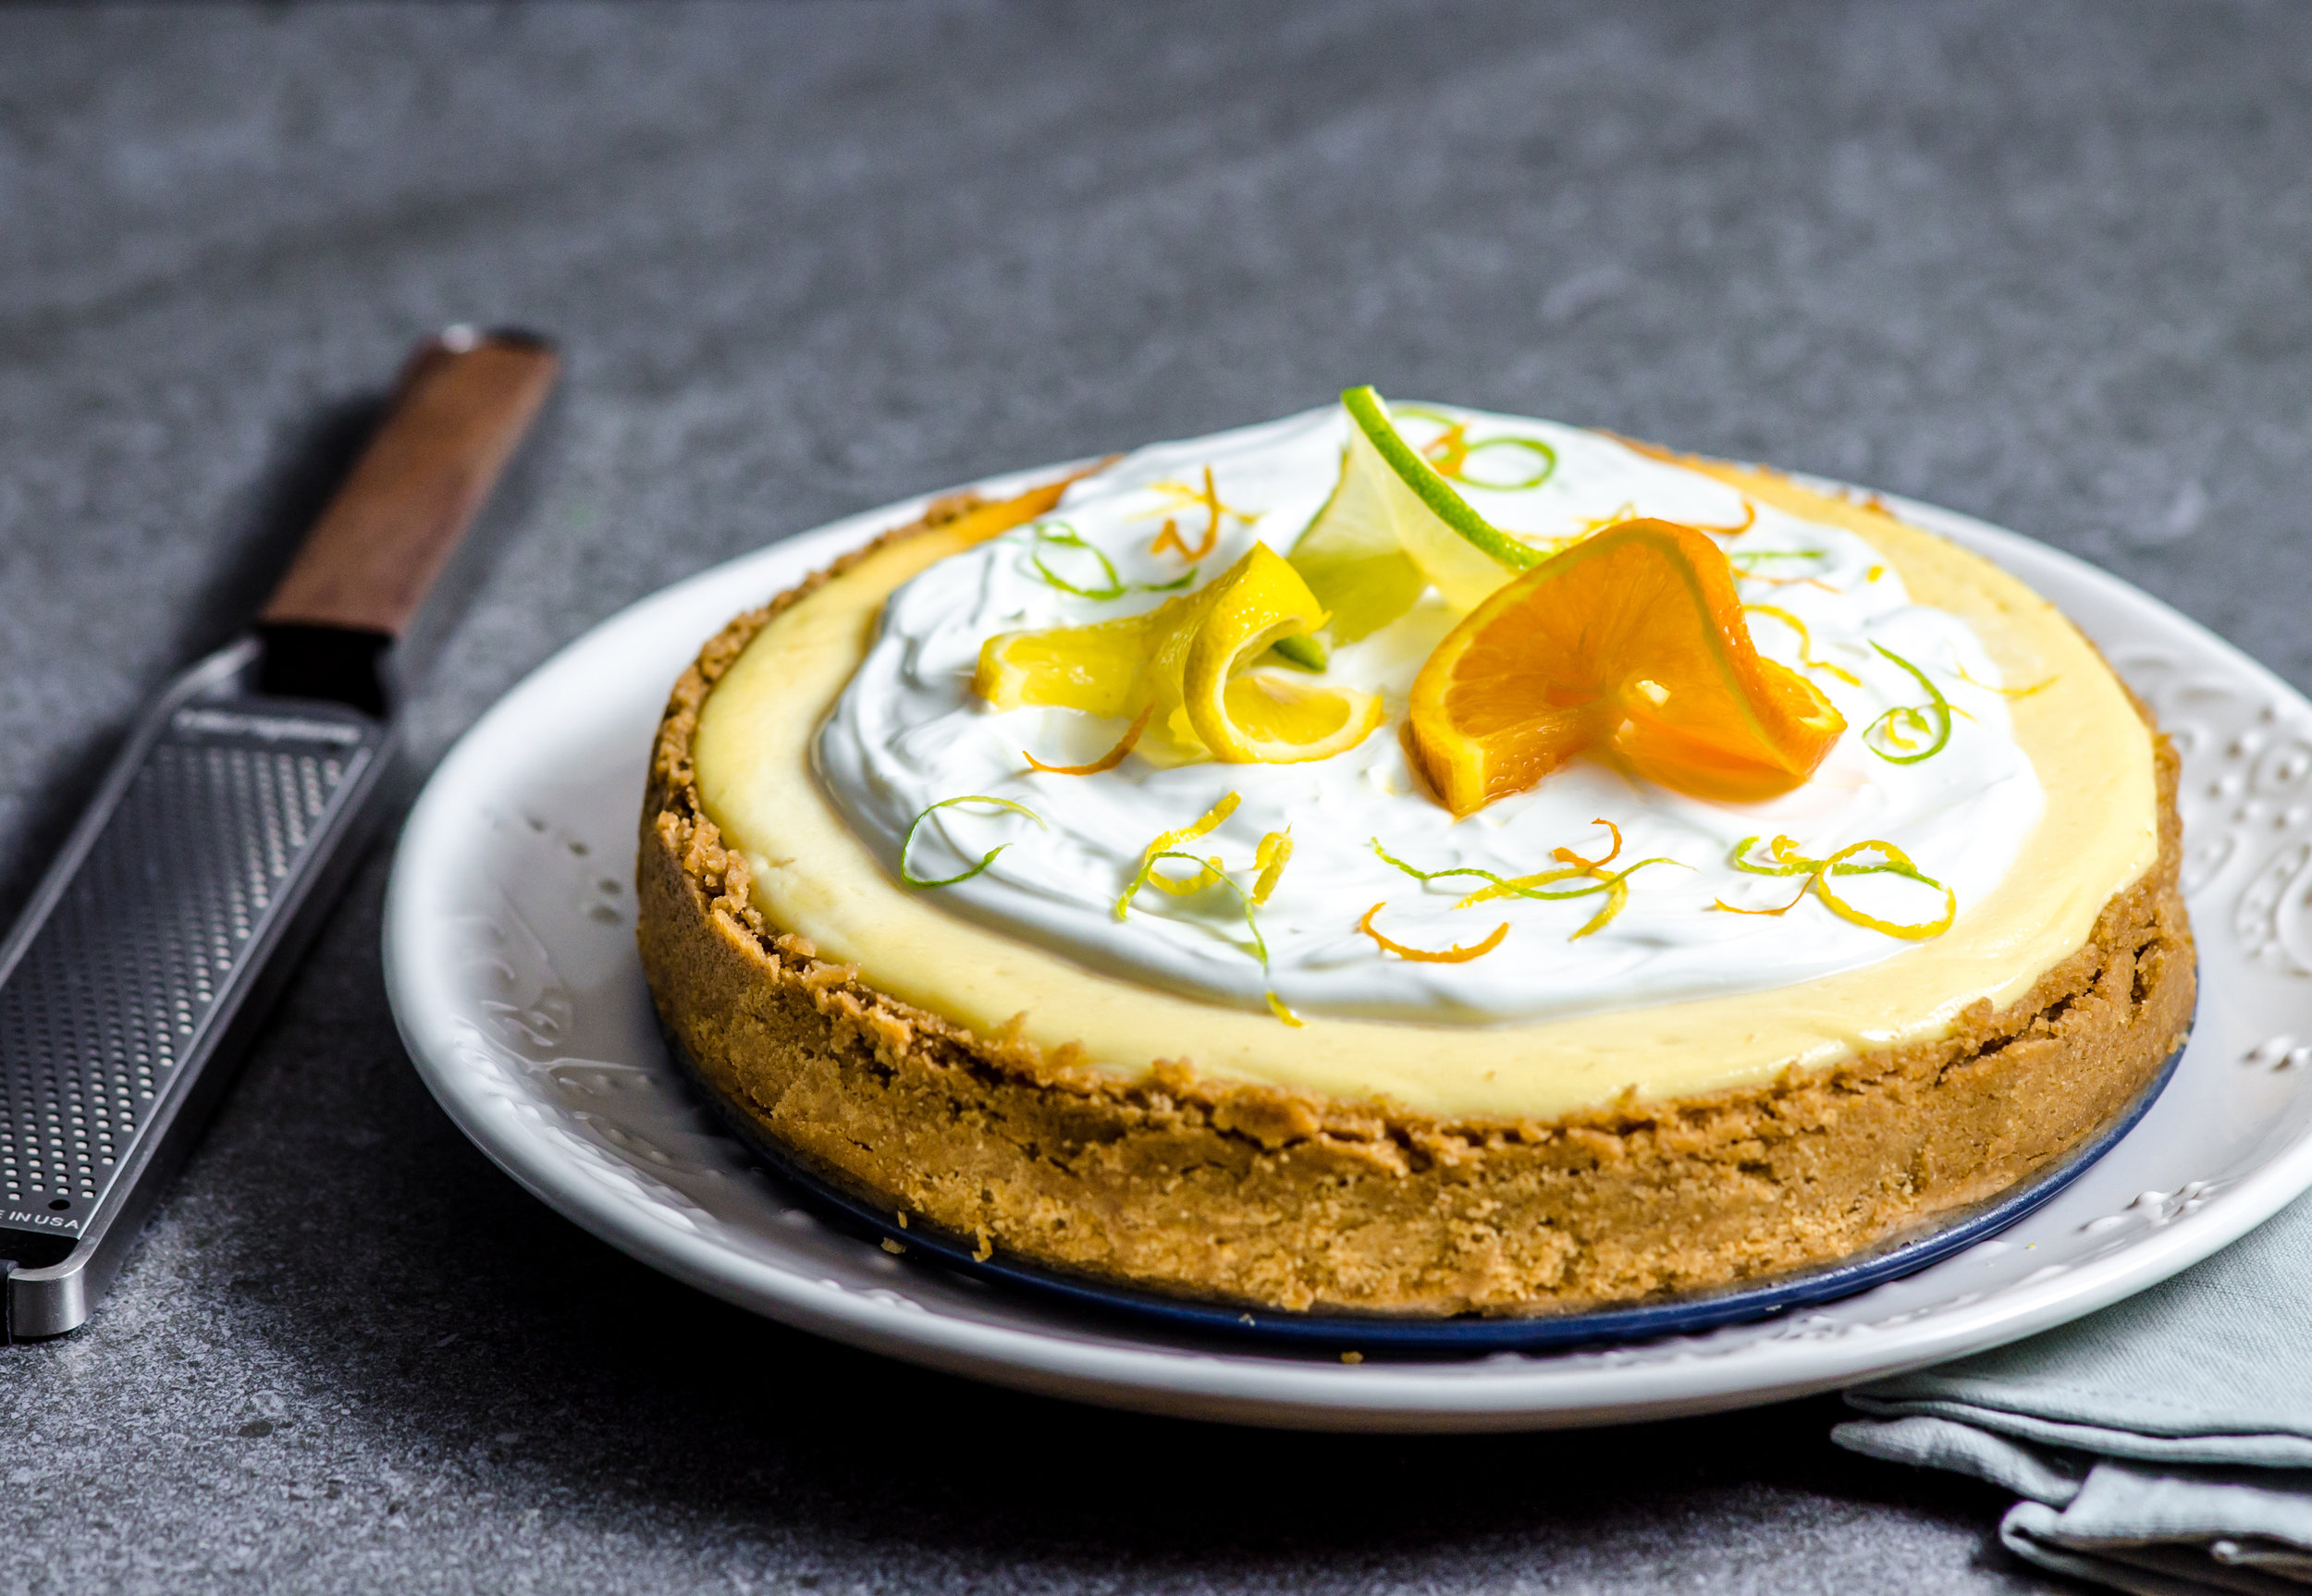 This Zesty Triple Citrus Cheesecake Is an Ideal End-of-Summer Treat - Woman's World